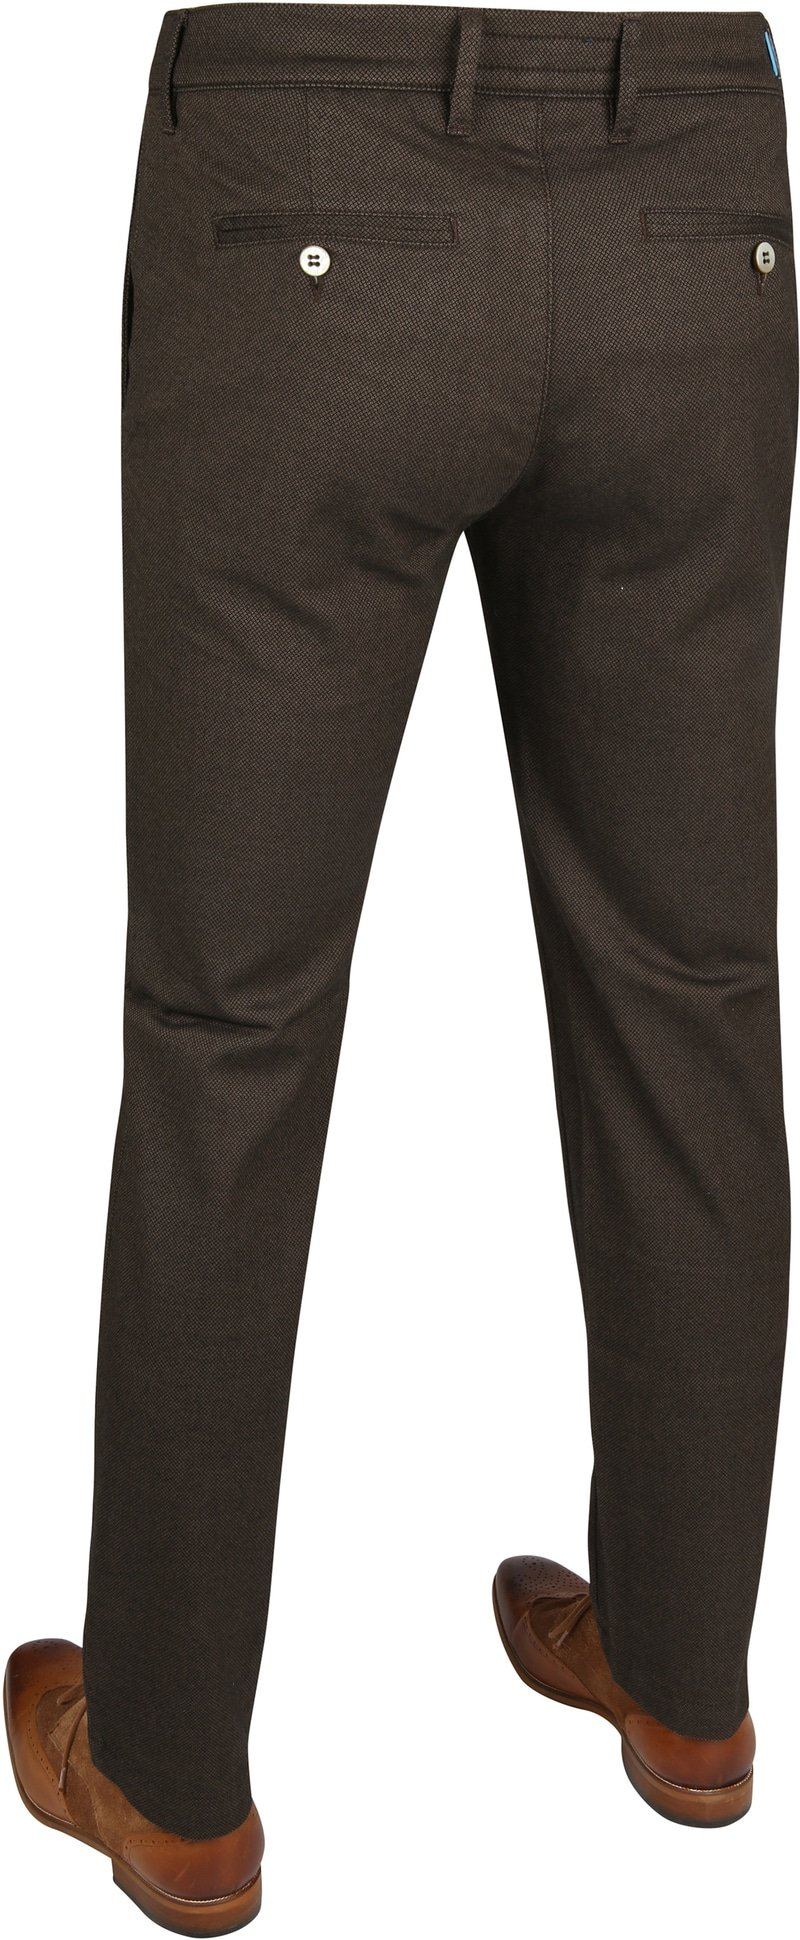 Pierre Cardin Lyon Chino Brown photo 3